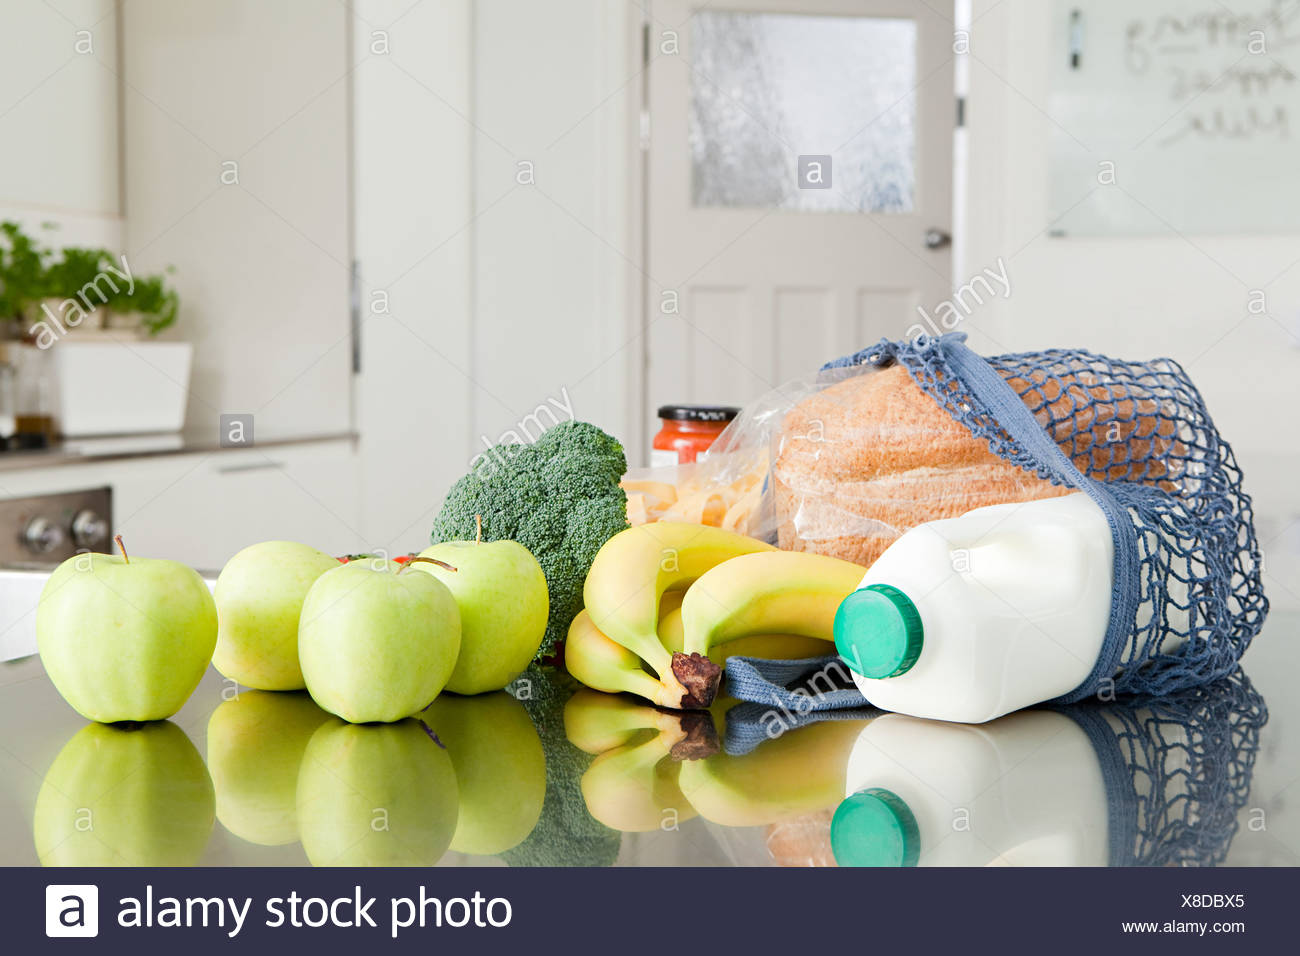 Groceries on kitchen counter - Stock Image